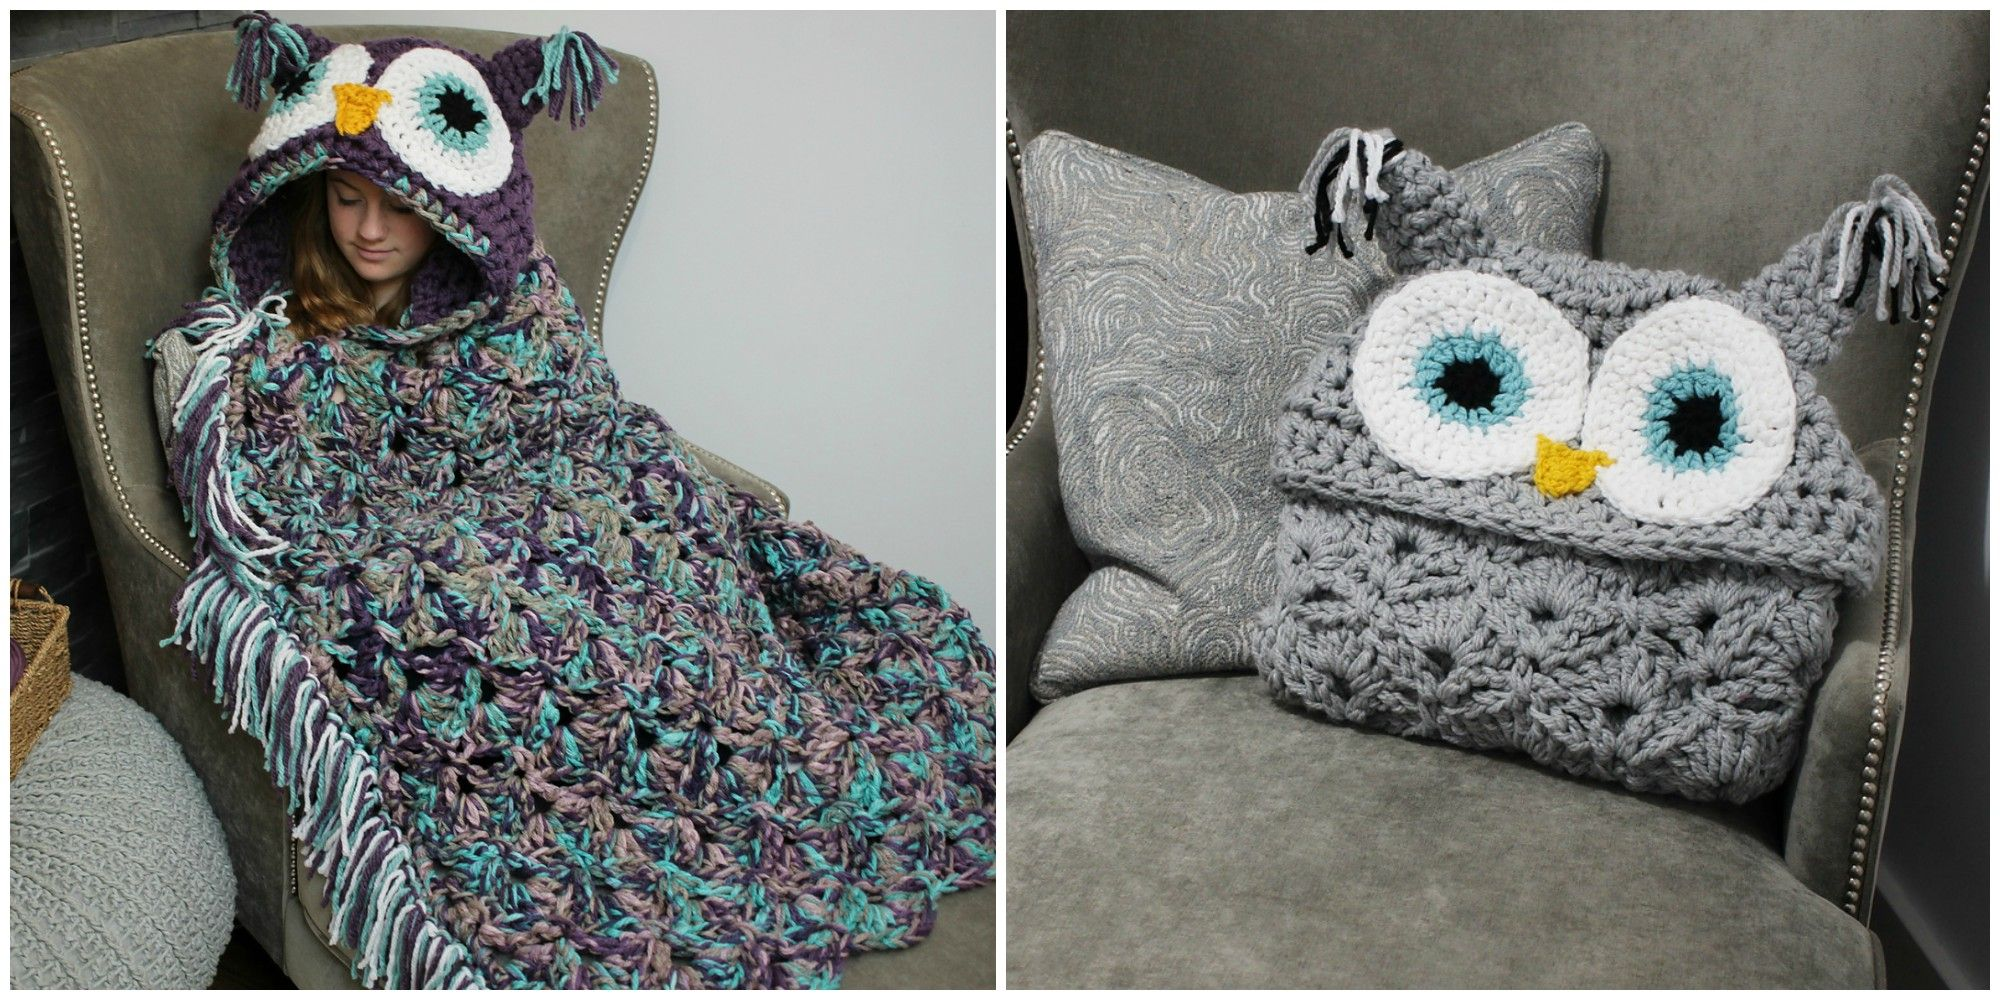 DIY Crochet Owl Blanket - How to Make Hooded Owl Blanket